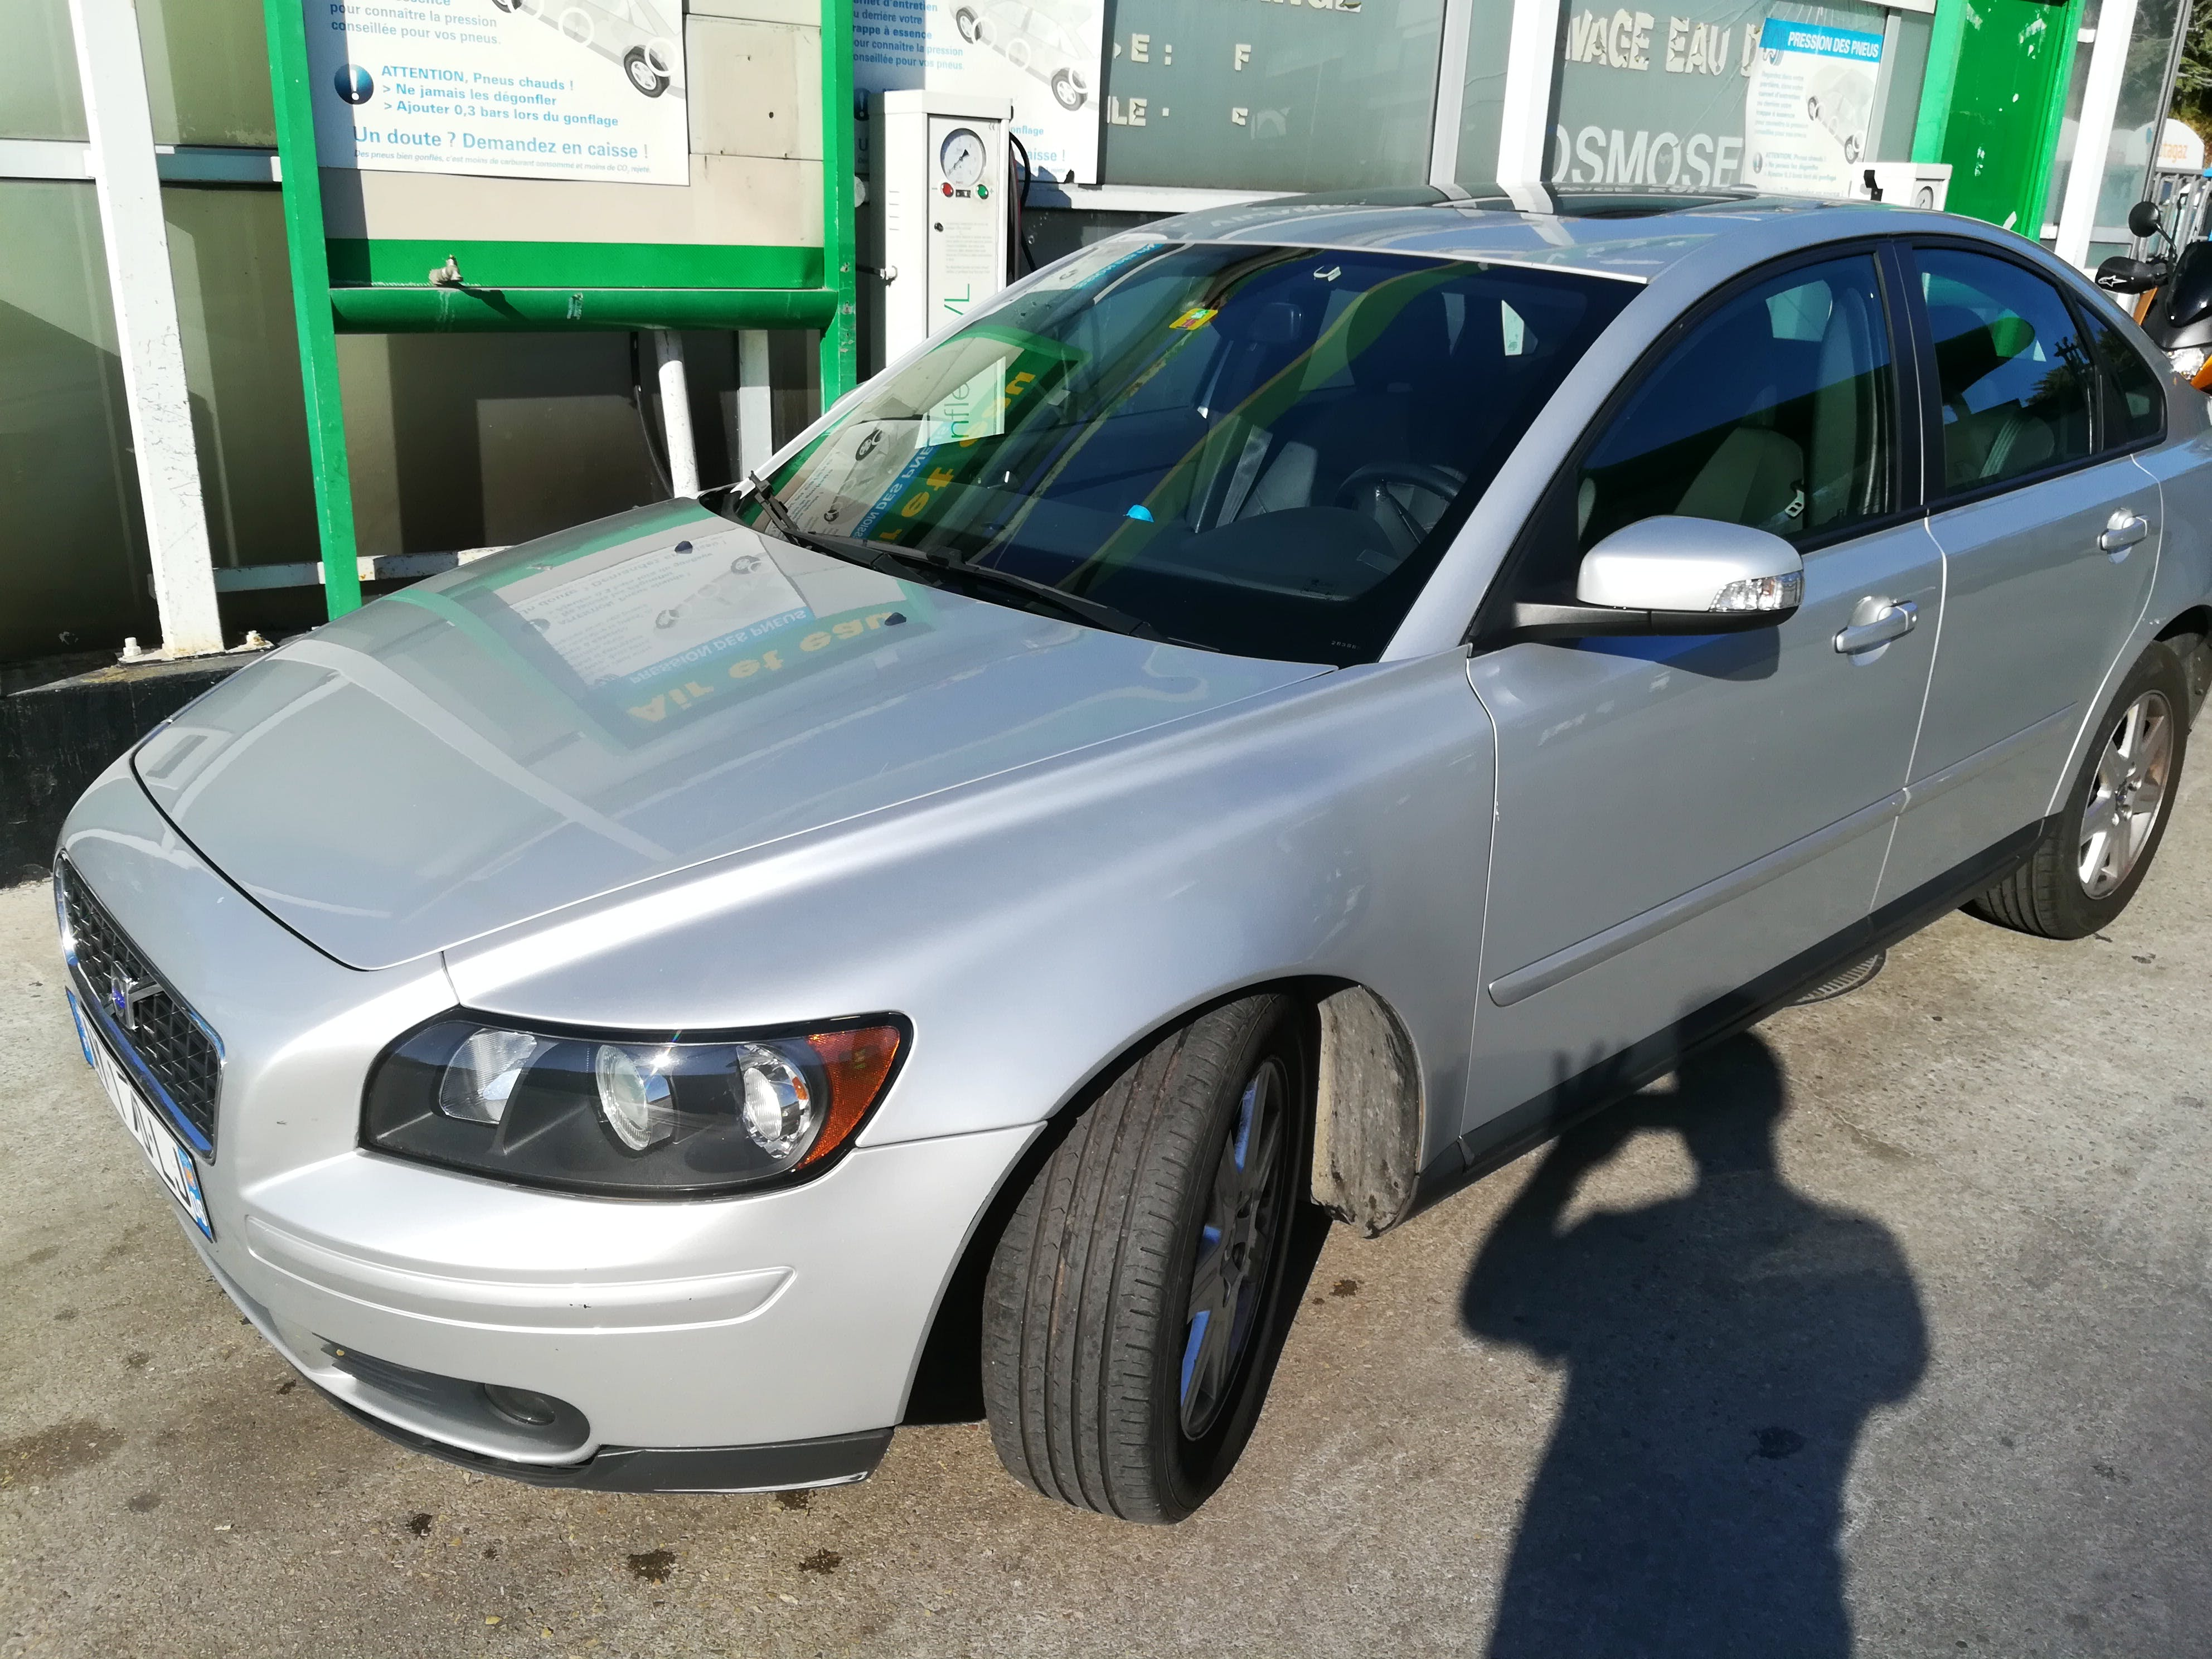 Volvo S40 2.4 - 140 Feeling, 2006, Essence, automatique